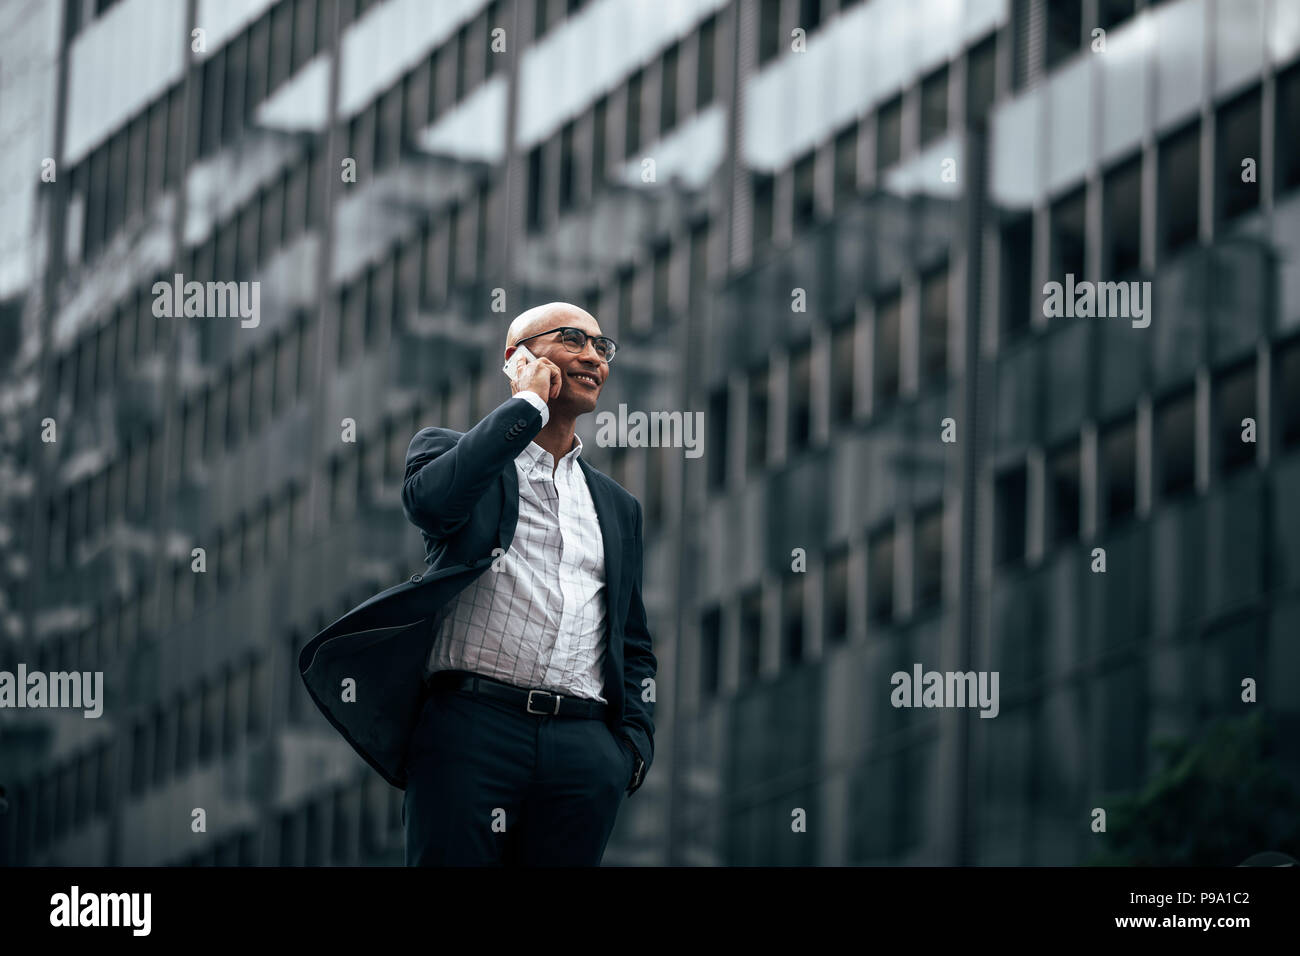 Smiling businessman talking over cell phone standing outdoors with a hand in pocket. Man in formal clothes walking on street talking on mobile phone. - Stock Image